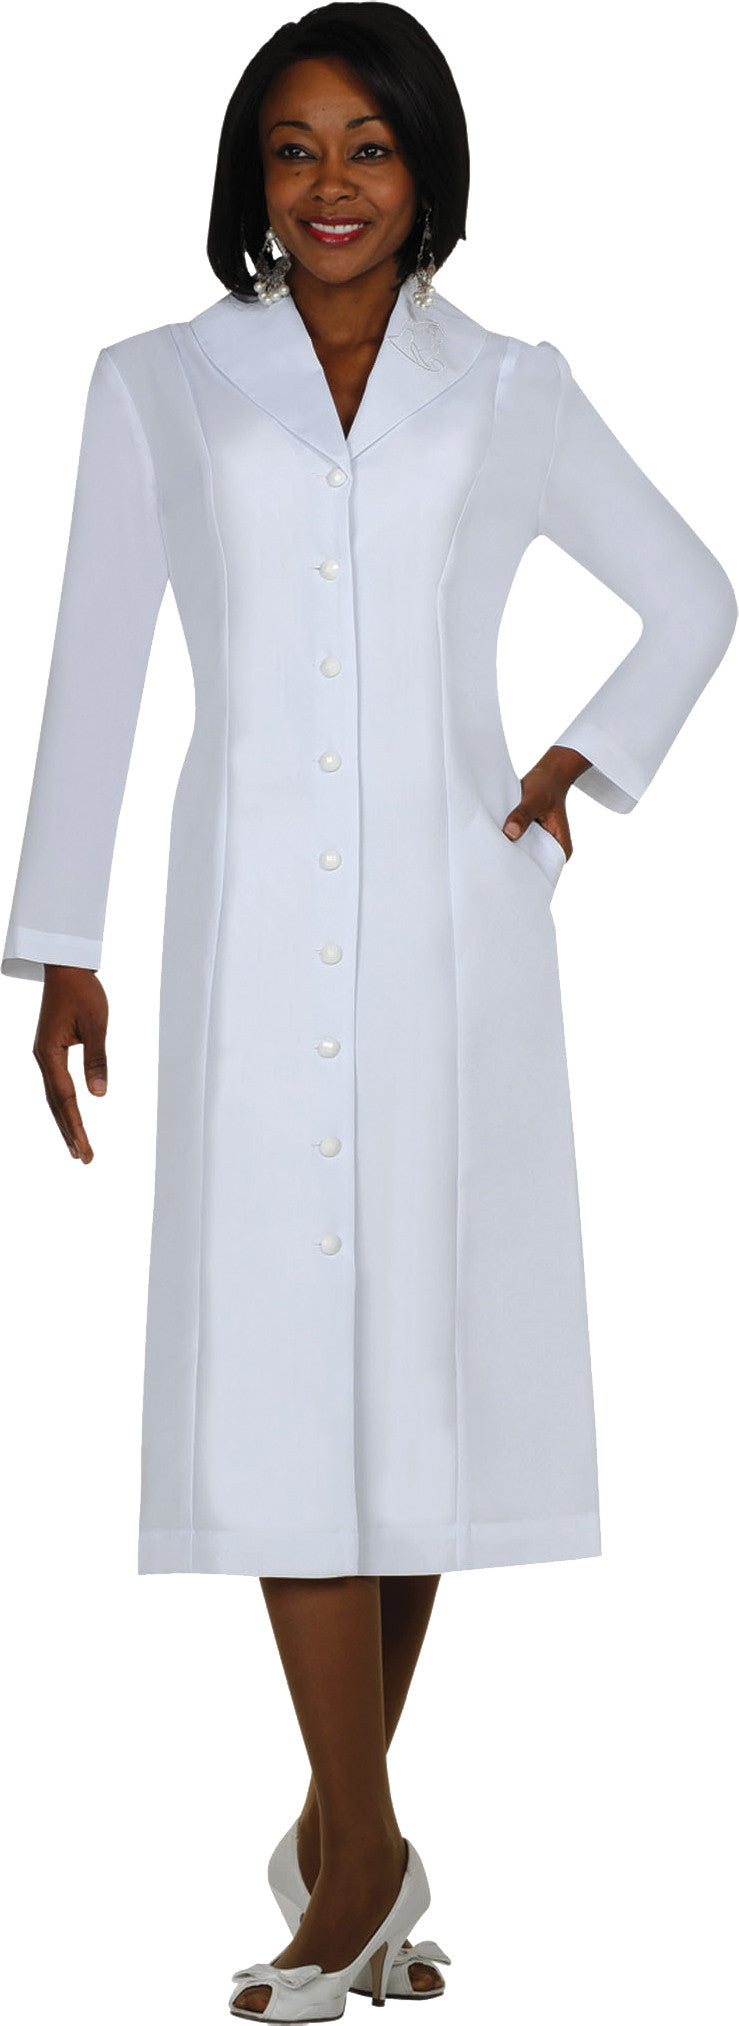 GMI Usher Suit-11674-White - Church Suits For Less